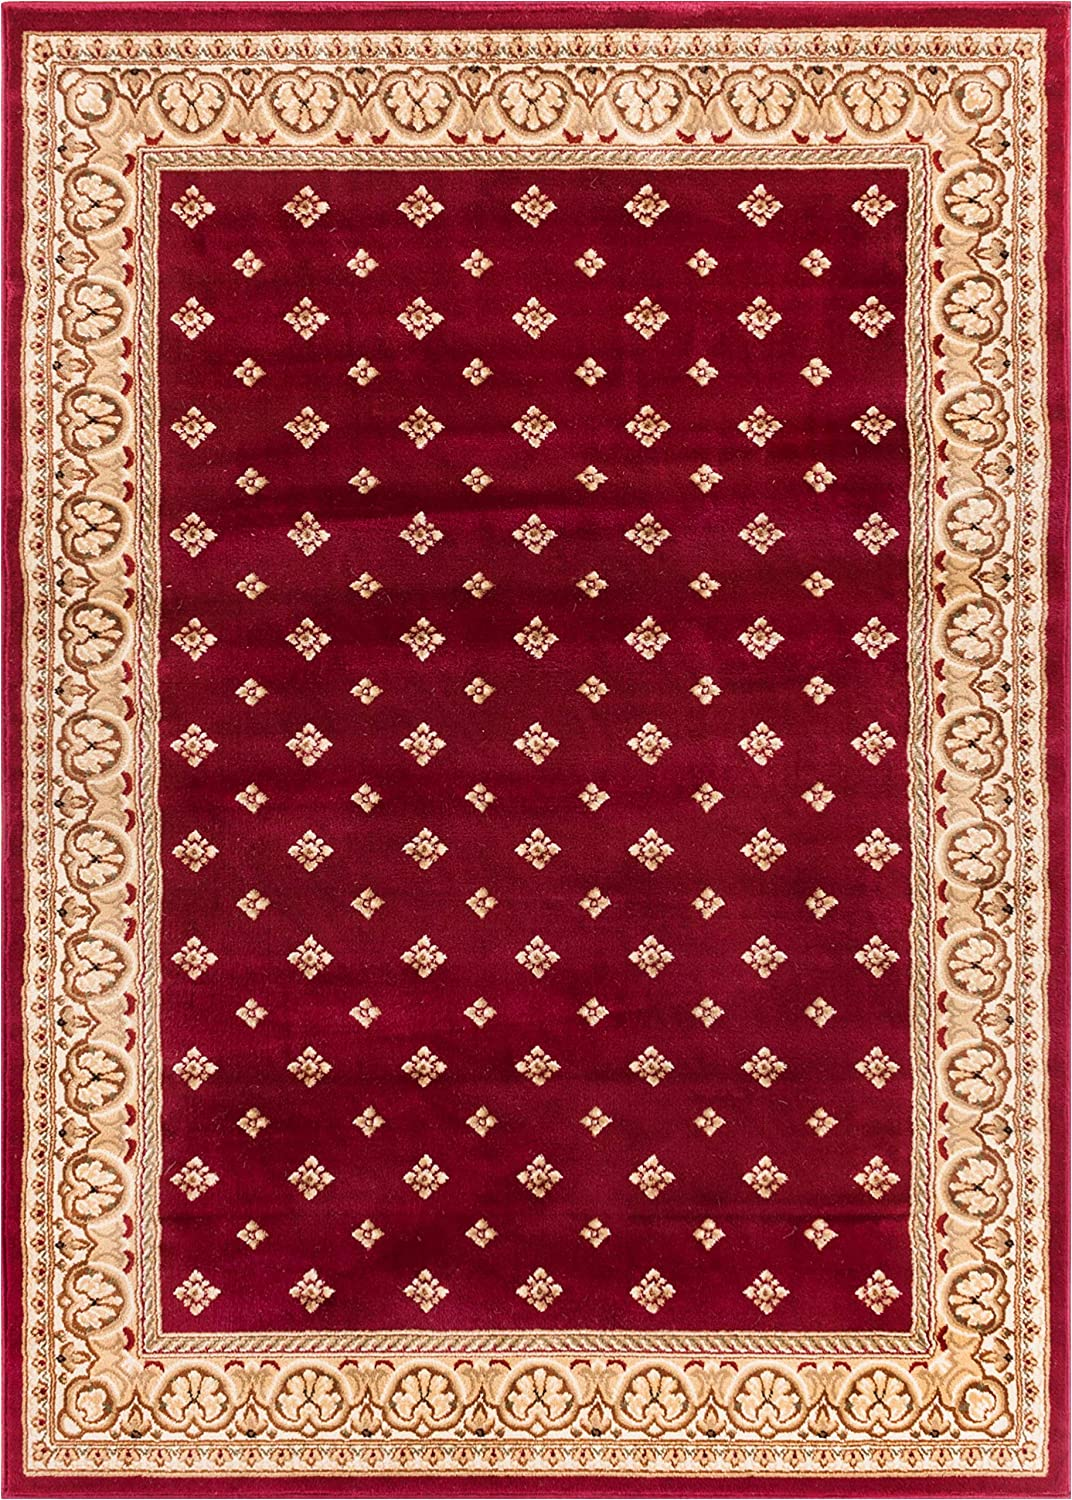 Well Woven Barclay Hudson Terrace Red Traditional Area Rug 6'7'' X 9'6''